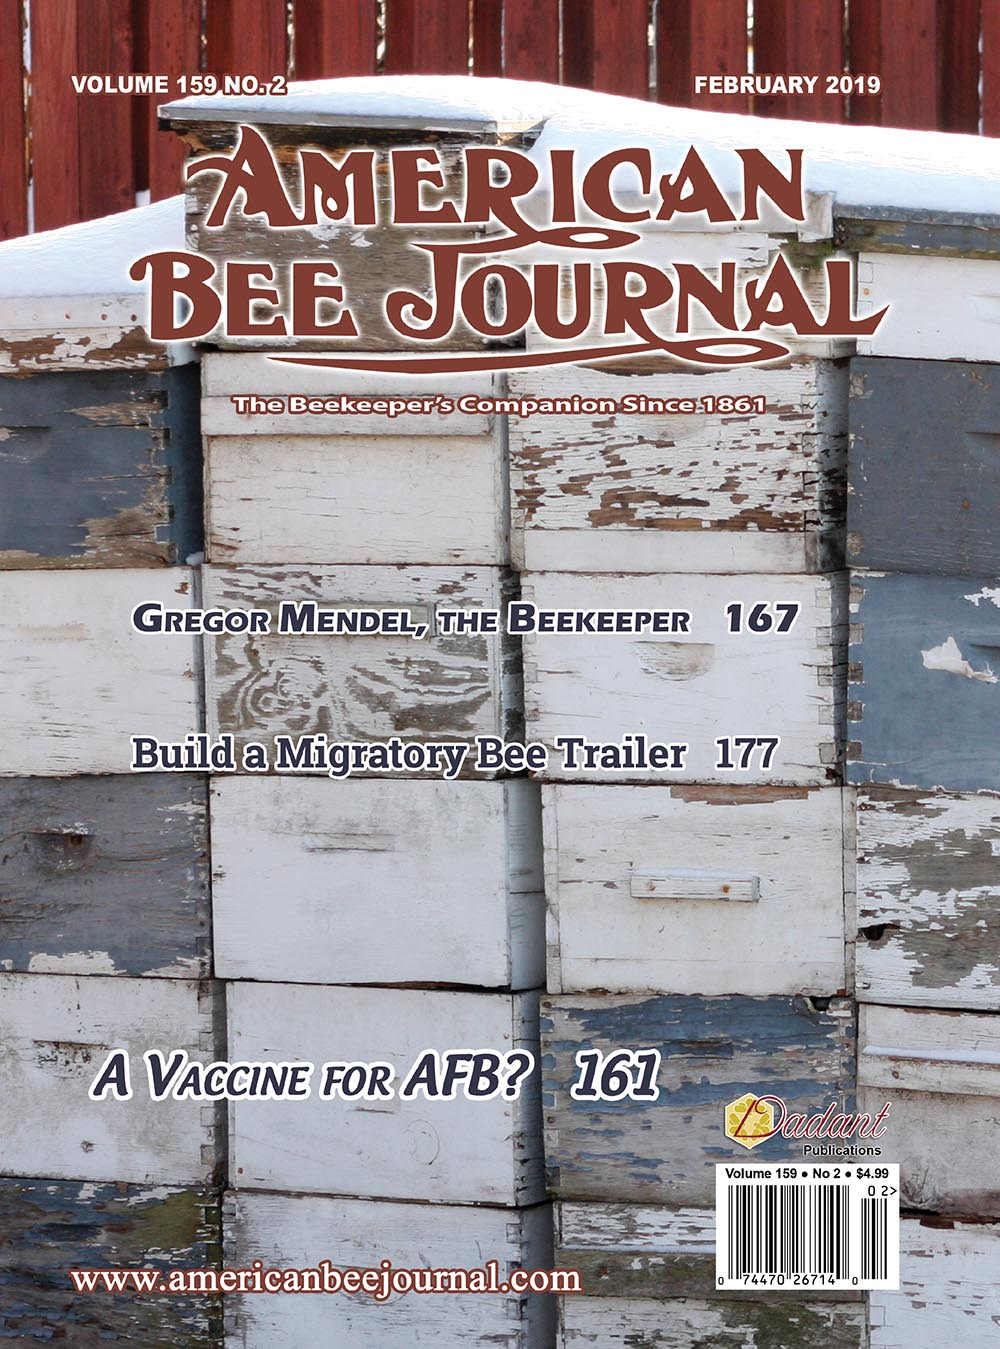 American Bee Journal February 2019 Cover